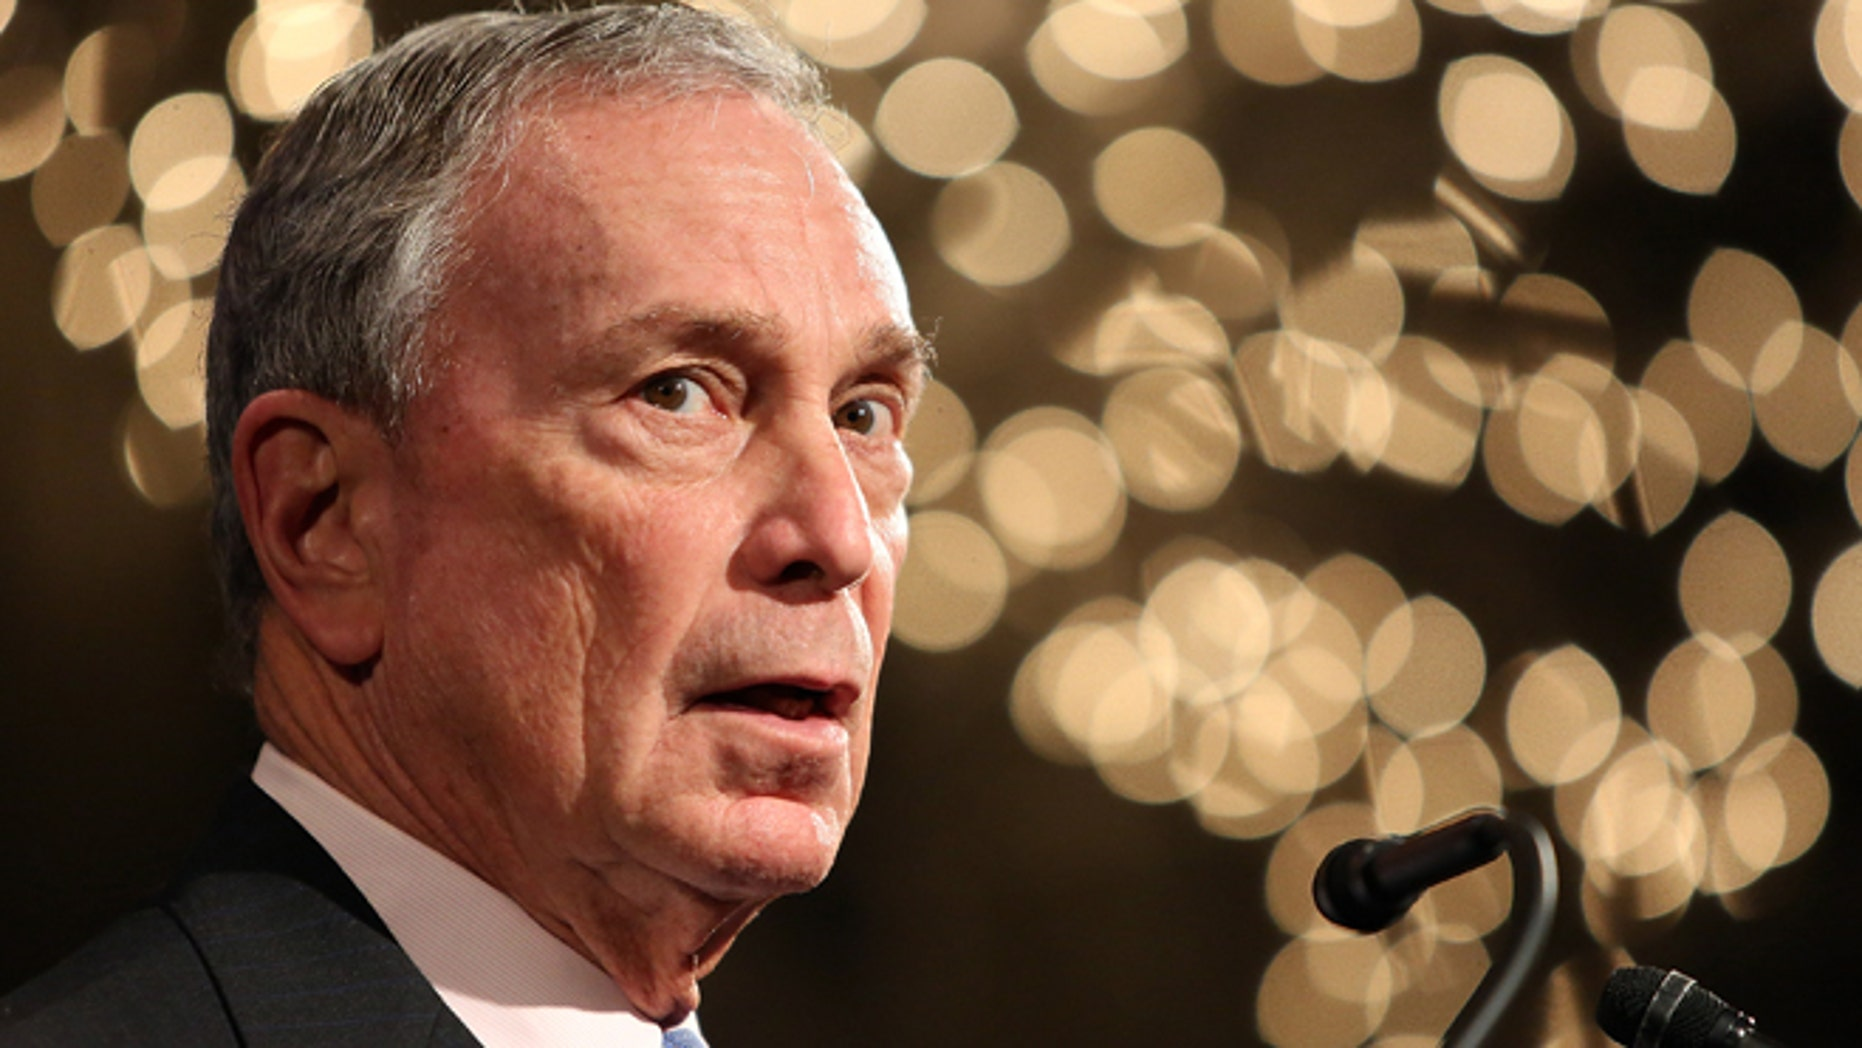 """NEW YORK, NY - FEBRUARY 10:  (EXCLUSIVE ACCESS, SPECIAL RATES APPLY) Former Mayor of New York City, Michael Bloomberg, speaks at the """"Not One More"""" Event at Urban Zen on February 10, 2015 in New York City.  (Photo by Monica Schipper/Getty Images)"""